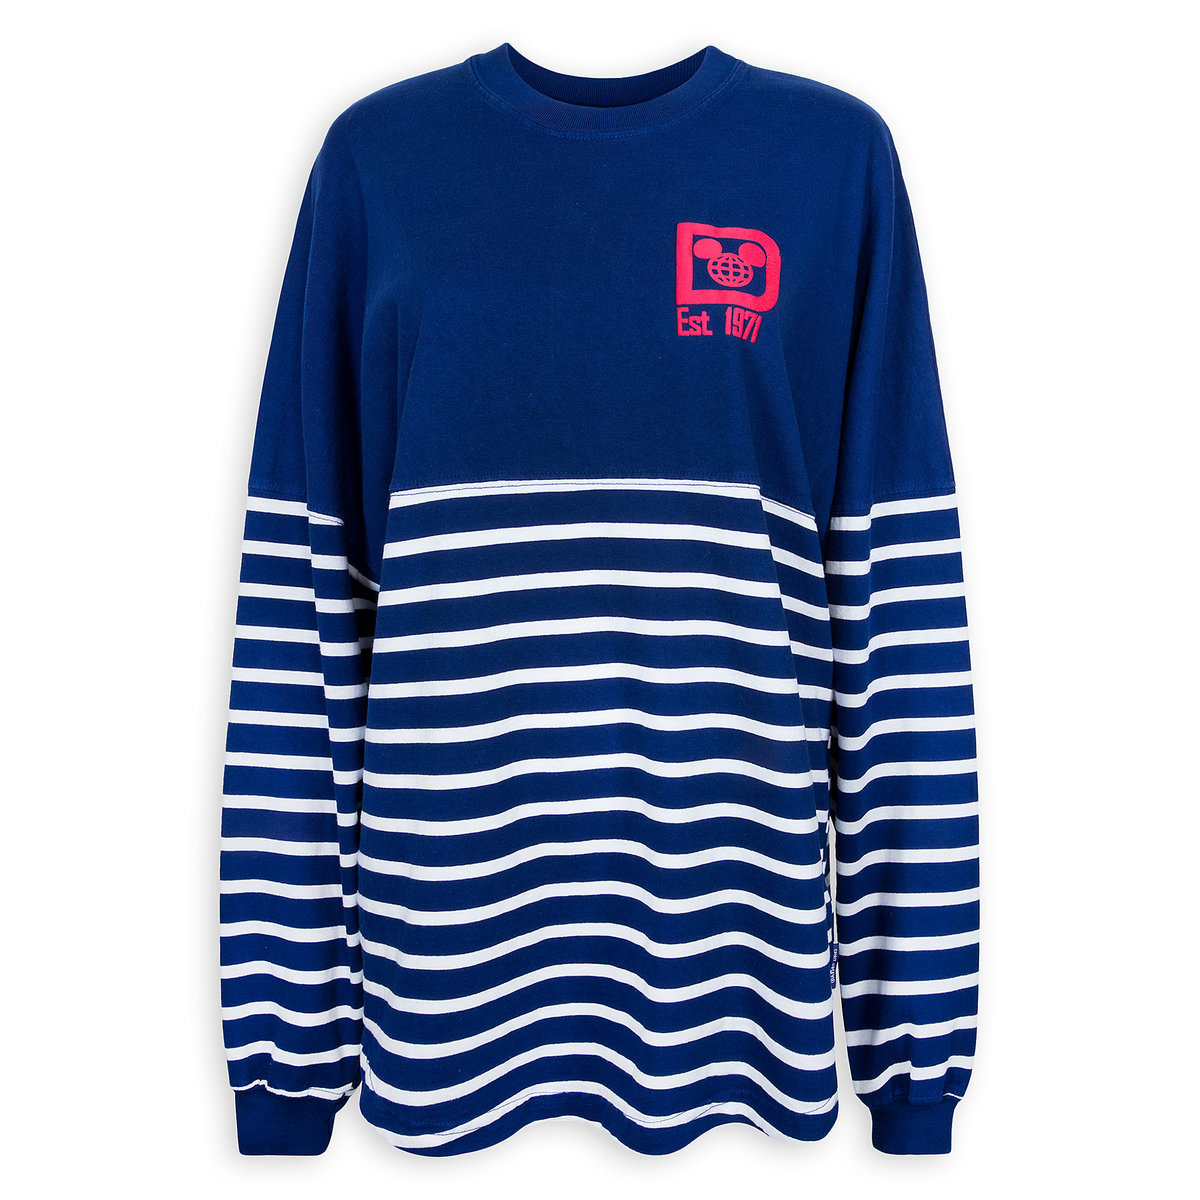 250ad0958 Product Image of Walt Disney World Americana Spirit Jersey for Adults # 1